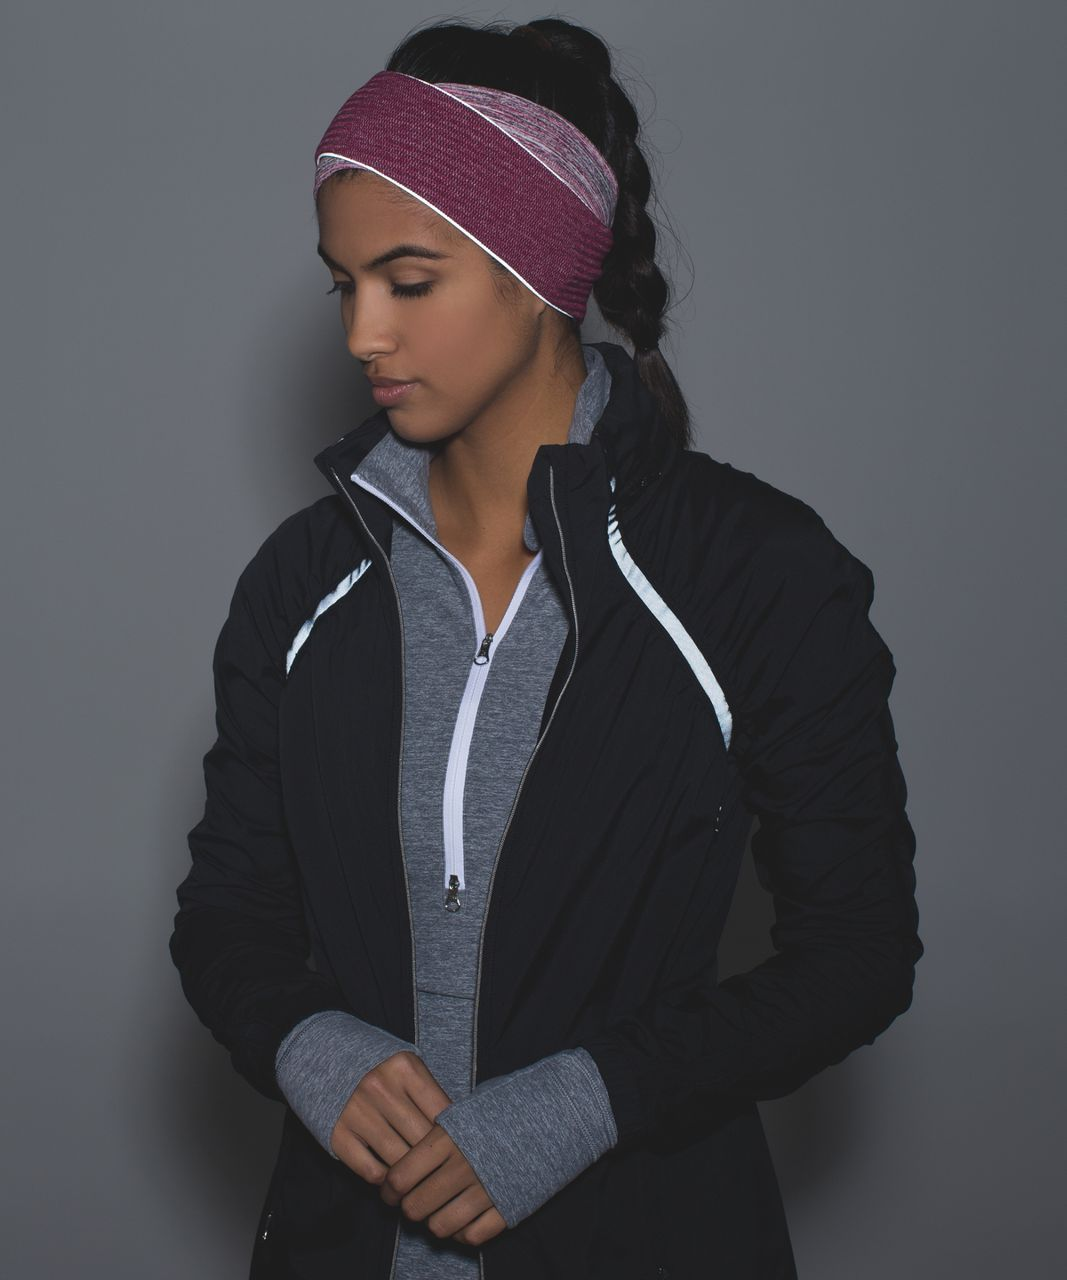 Lululemon Run And Done Ear Warmer *Ponytail - Space Dye Camo Berry Rumble Multi / Mini Check Pique Bordeaux Drama Heathered Berry Rumble